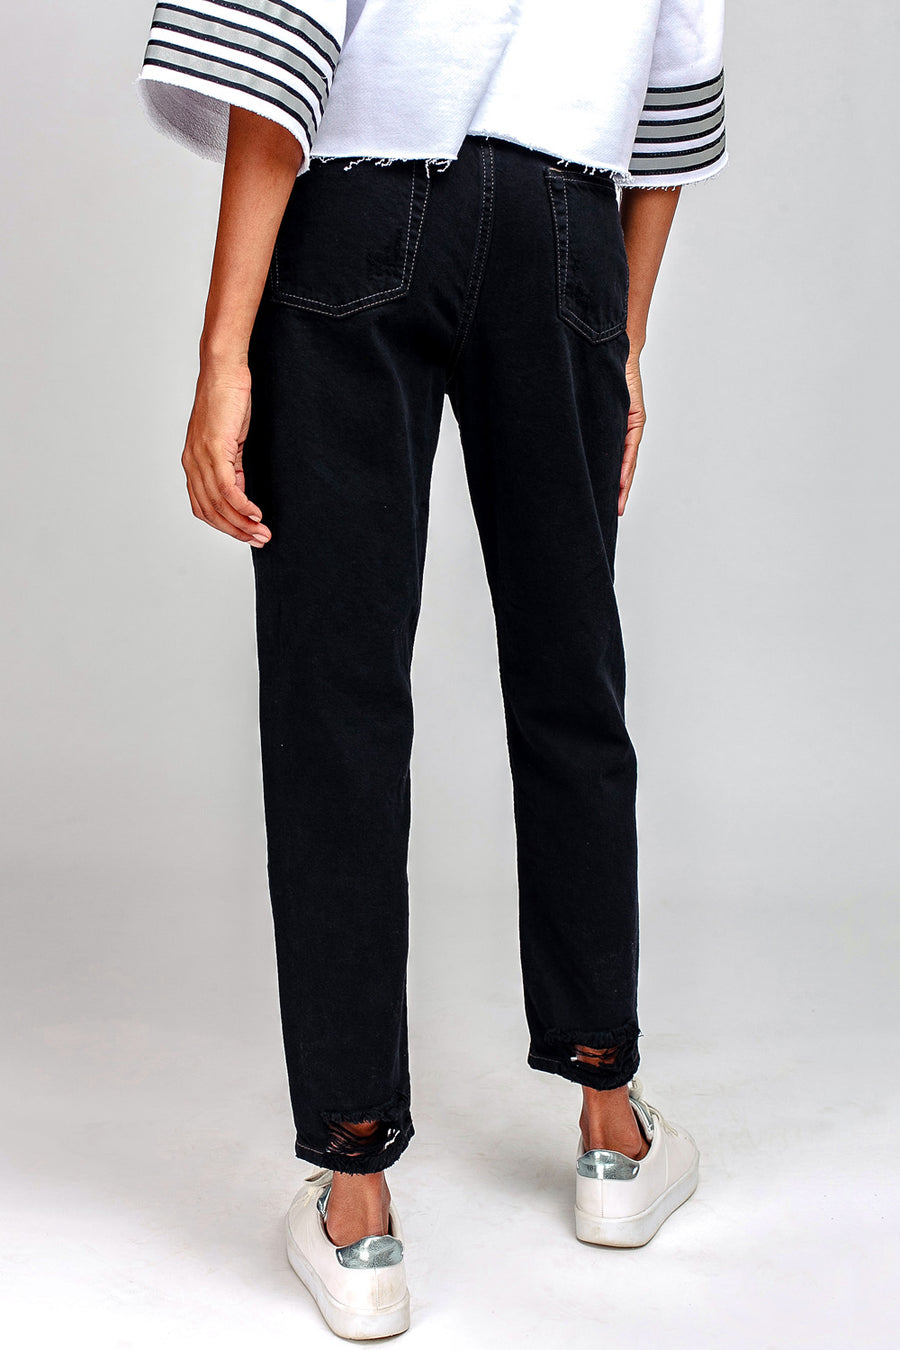 Multi-Space Crop Jeans